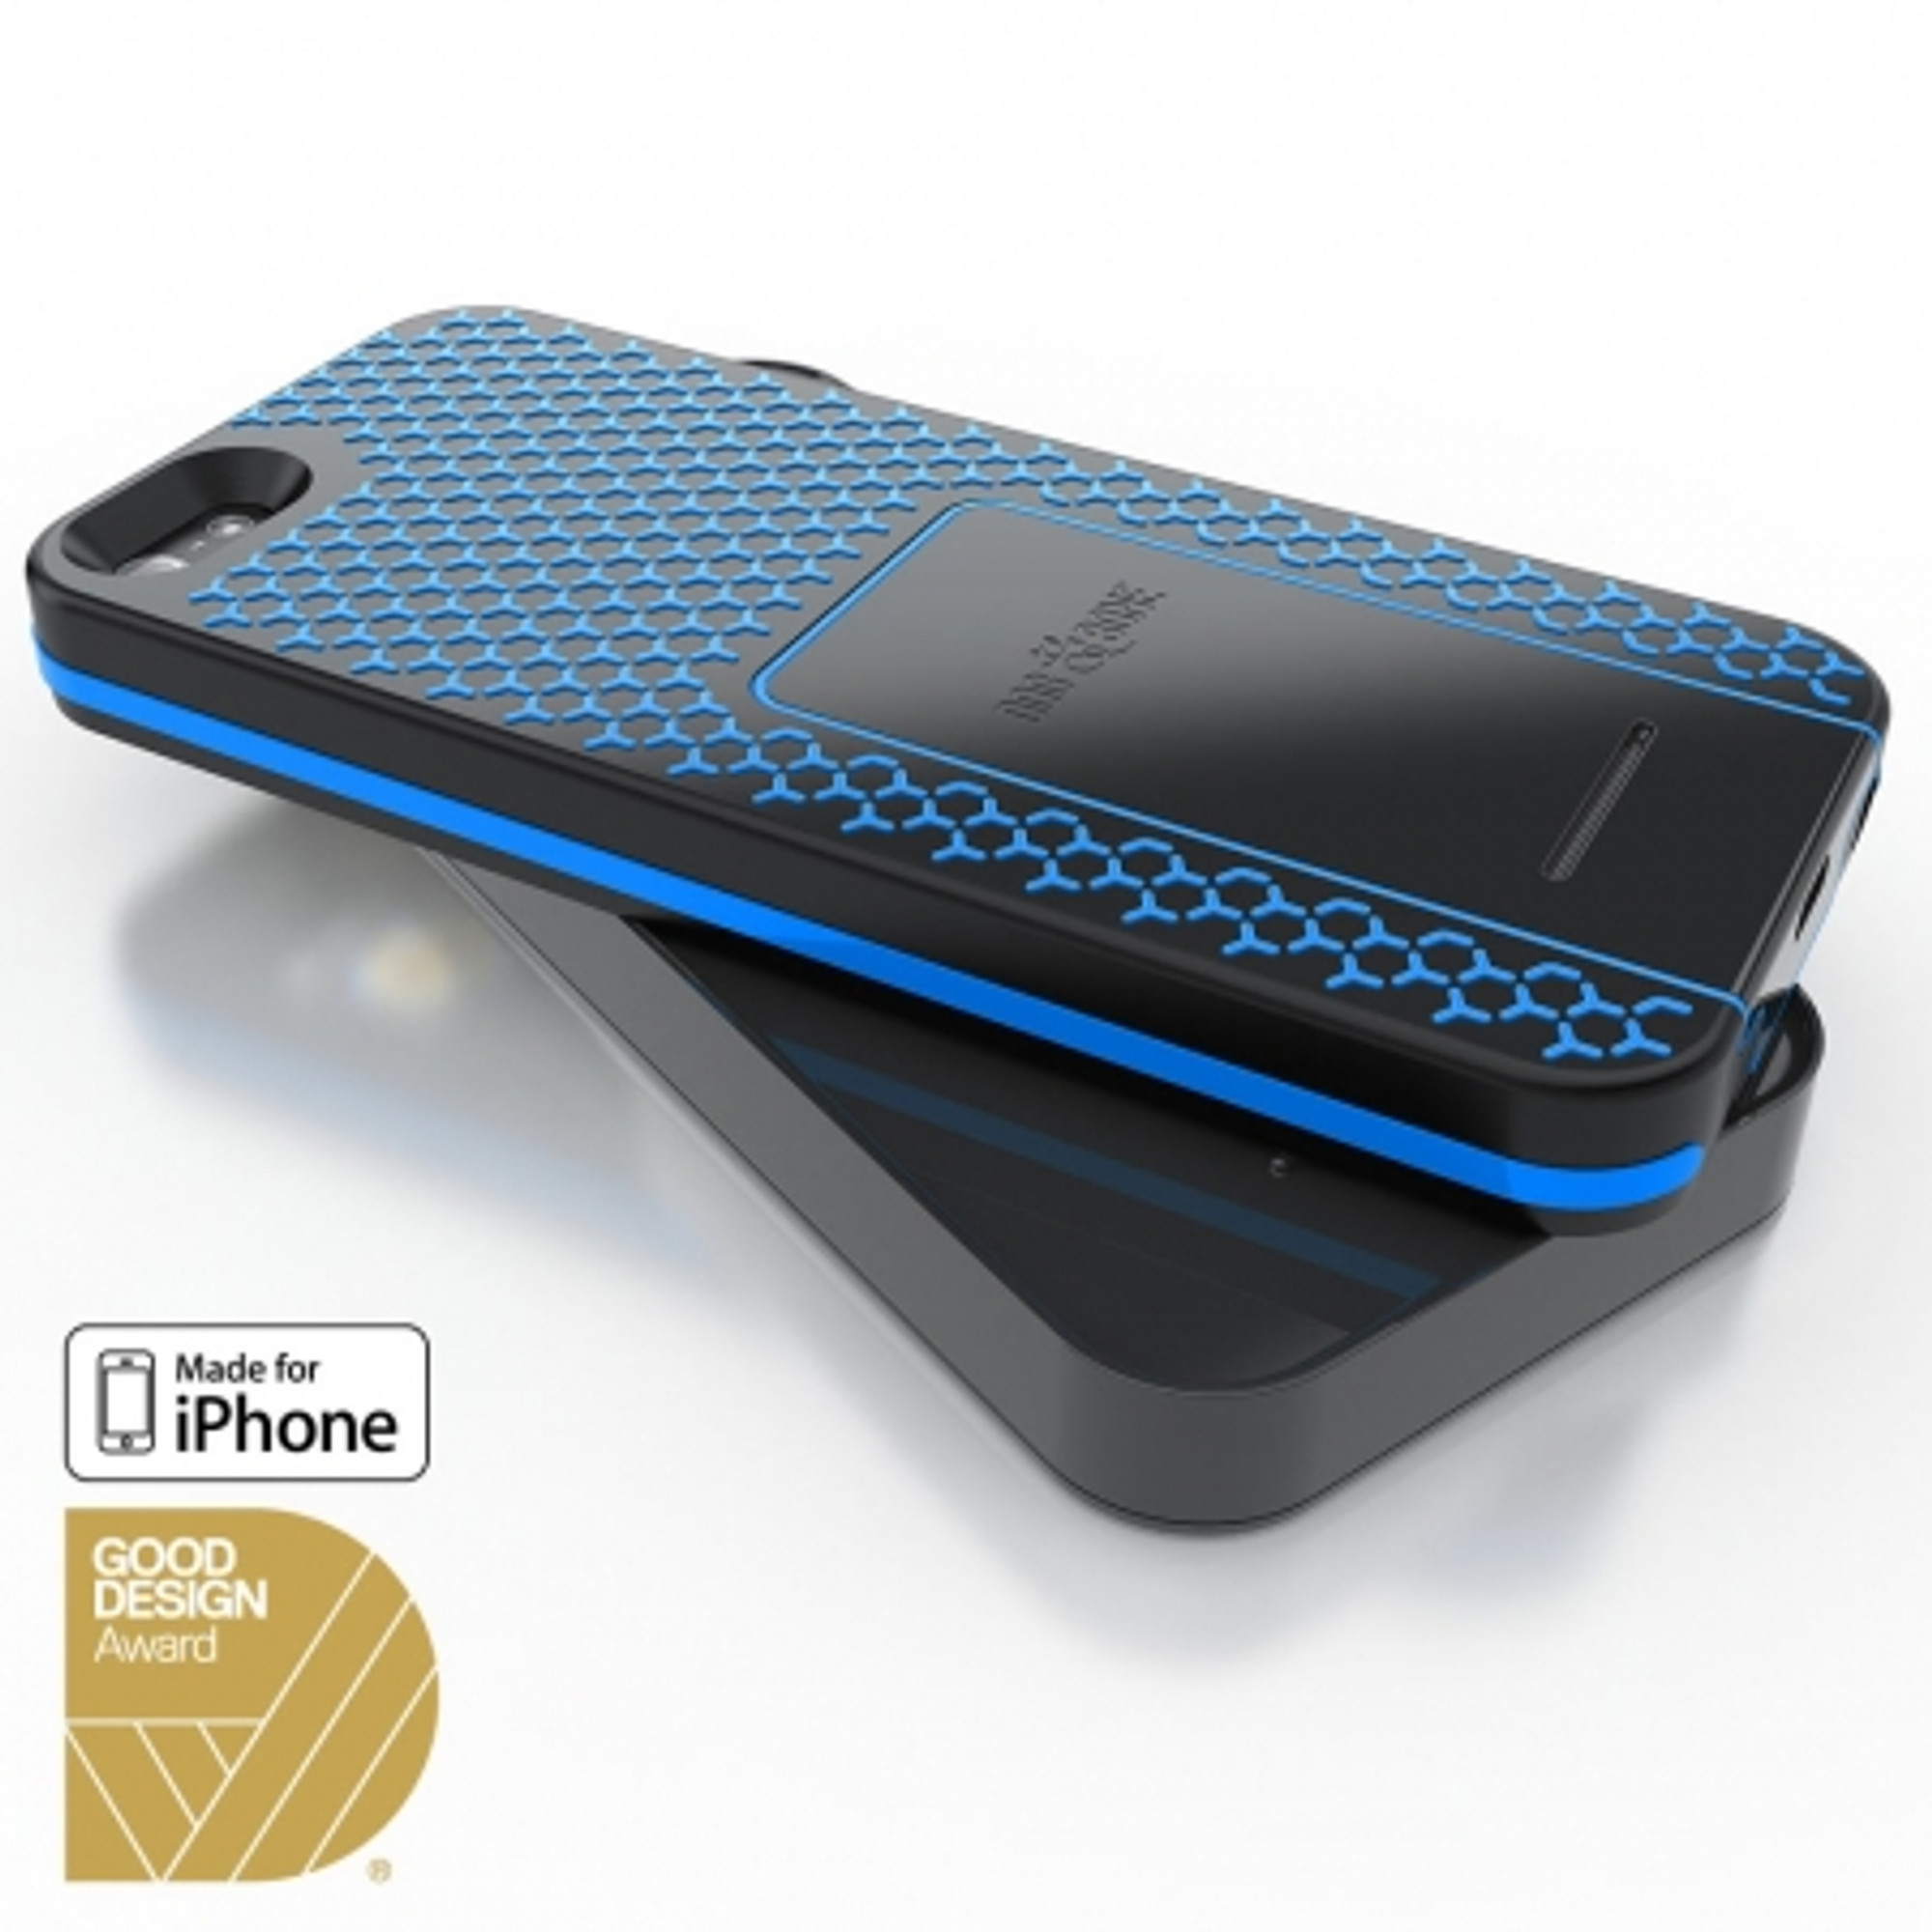 buy online 452d8 9140c Dog & Bone Wireless Charging Case + Pad for iPhone 5S / 5 - Blue